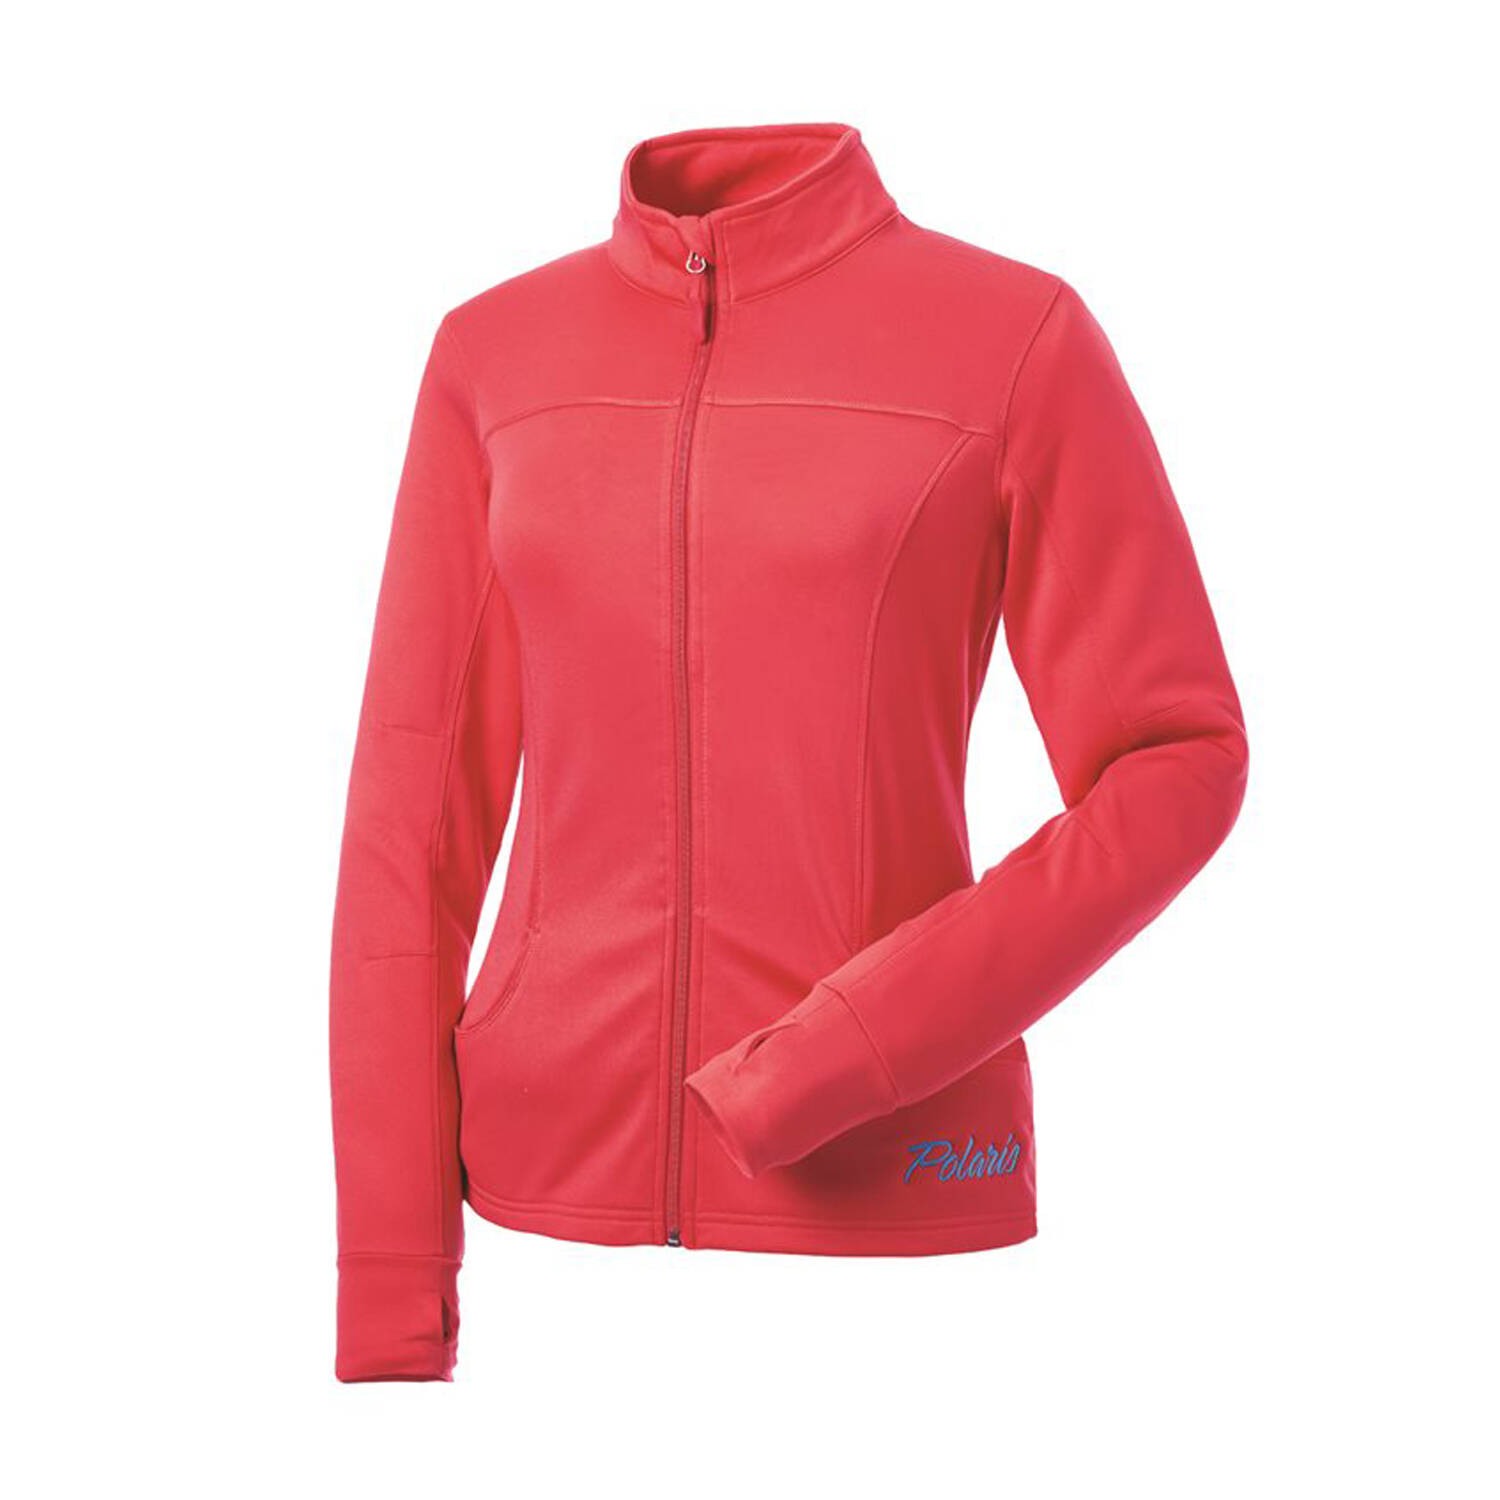 Women's Full-Zip Tech Jacket with Blue Polaris® Logo, Coral